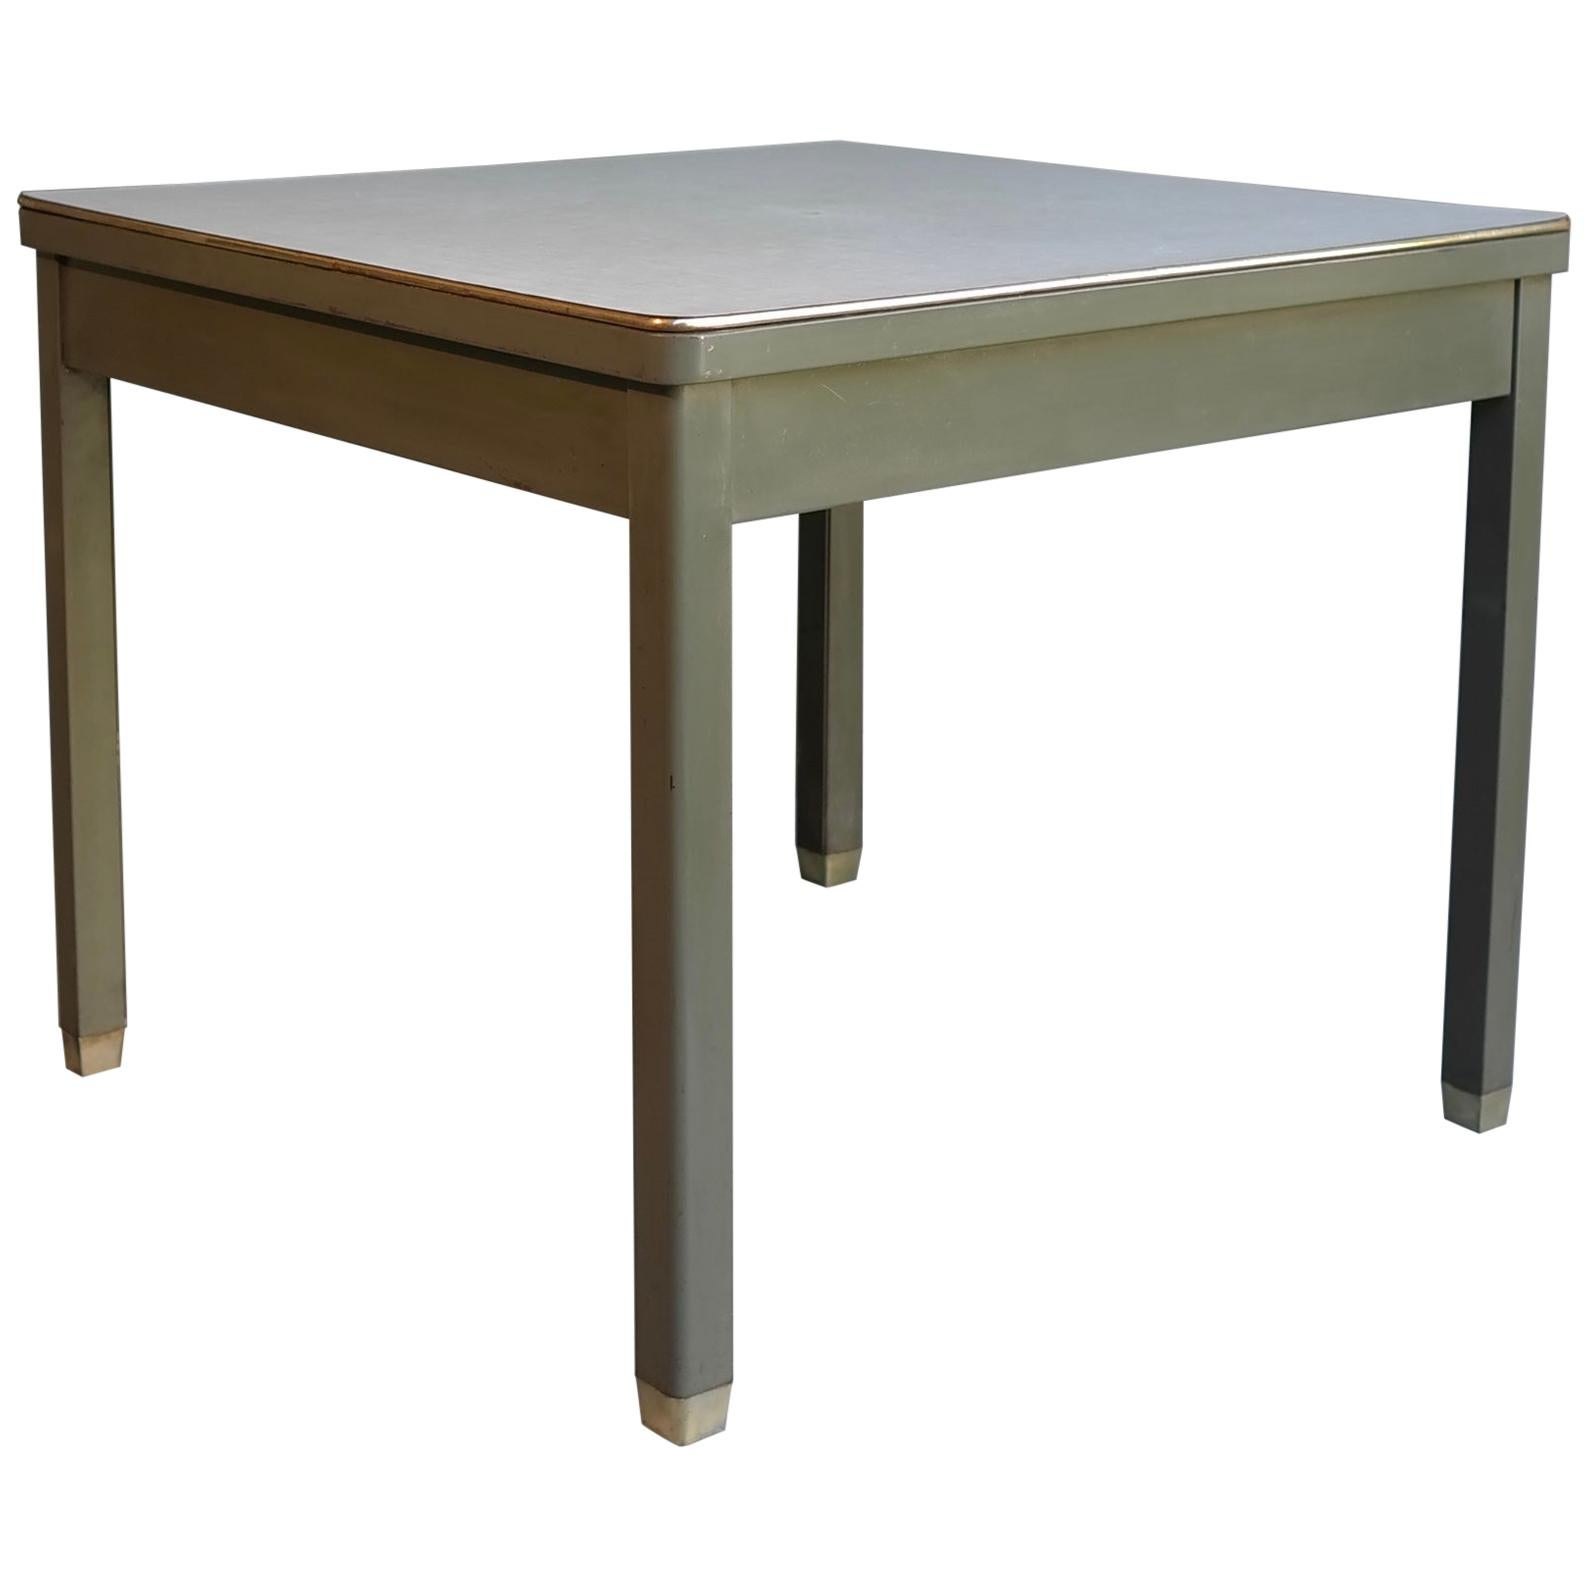 4x Industrial Work Table in Green Metal with Brass Feet and Rim, Belgium, 1950s